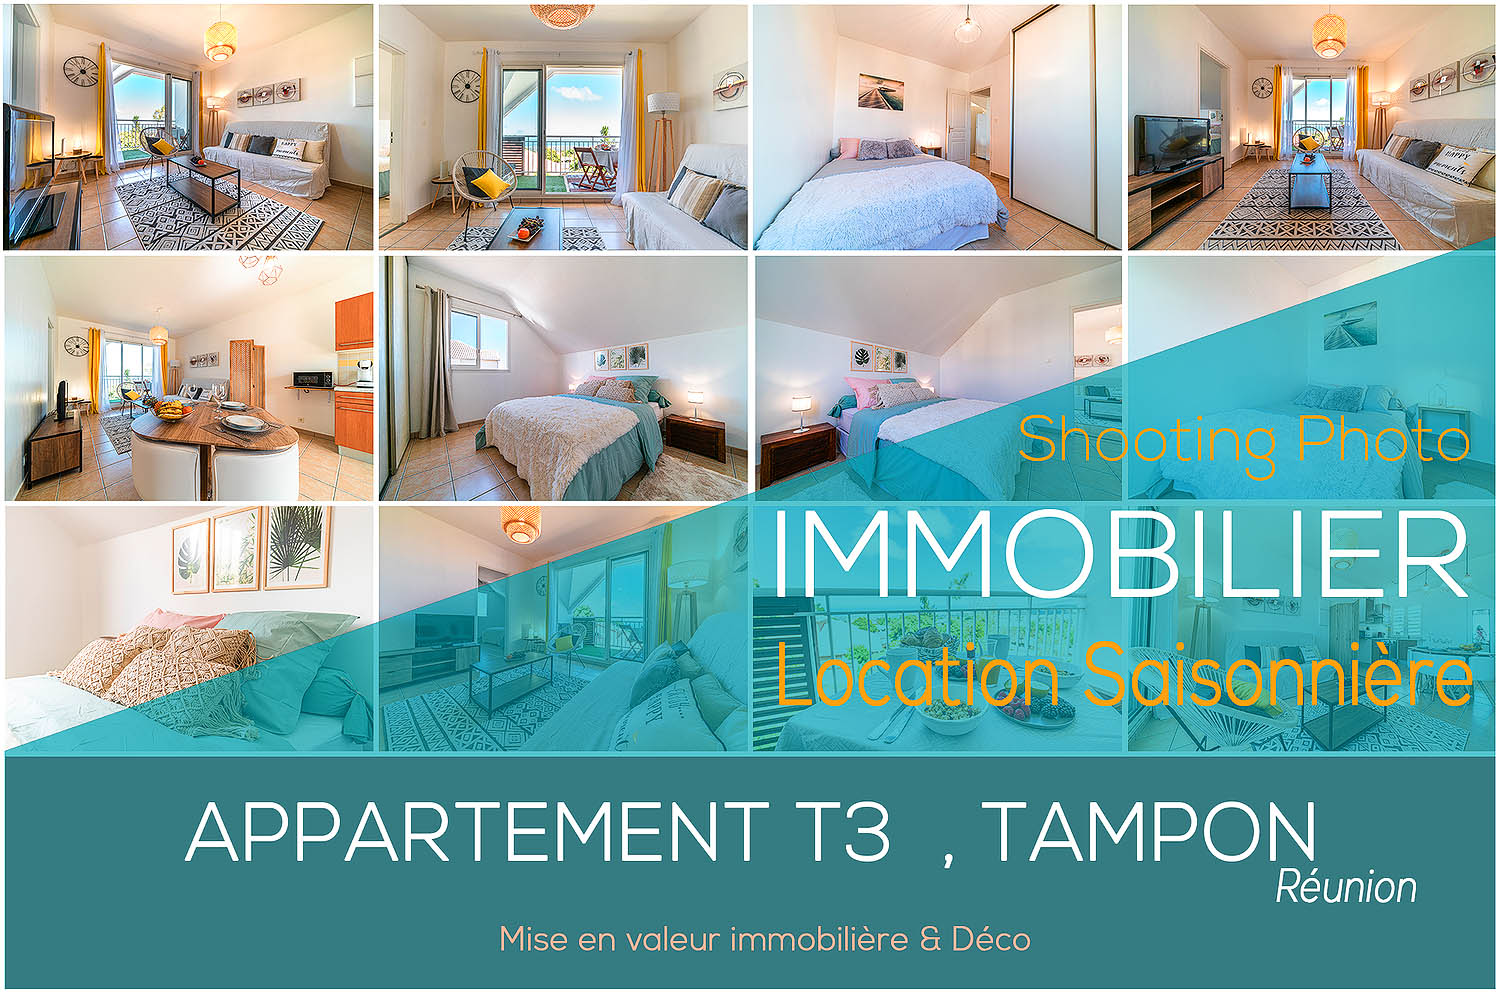 Shooting Photographe Immobilier Reunion T3 Tampon Figuiers